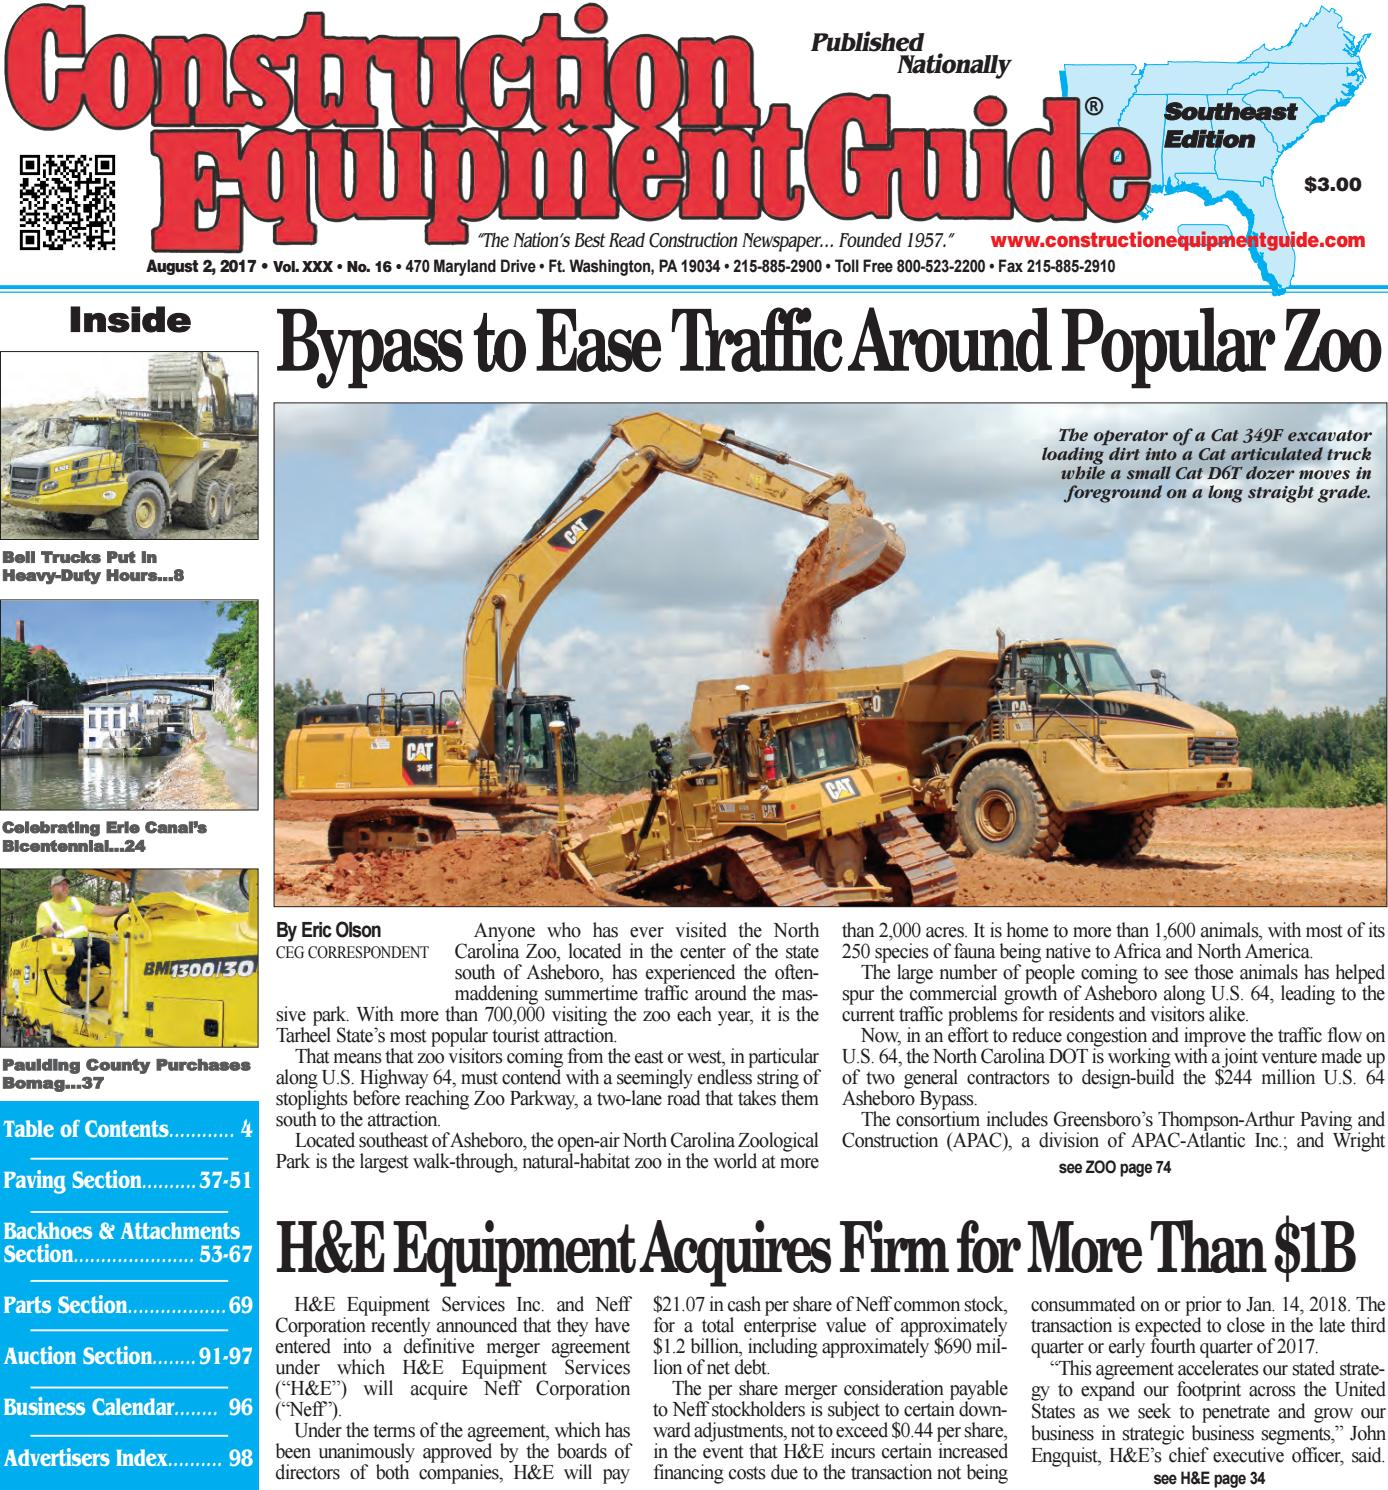 Southeast 16 August 2, 2017 by Construction Equipment Guide